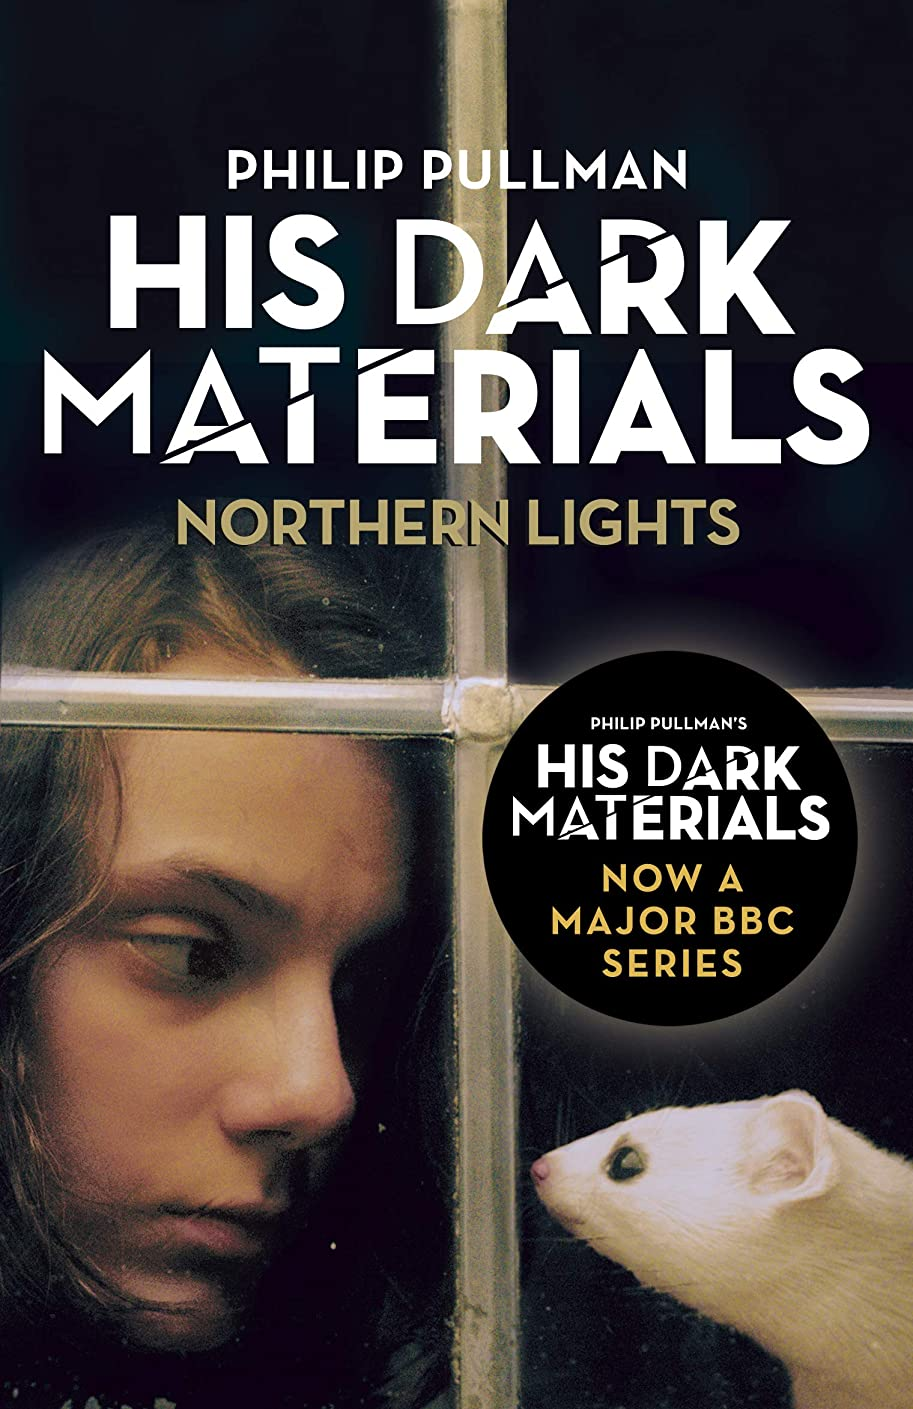 ソブリケットタンク止まるNorthern Lights: His Dark Materials 1 (English Edition)